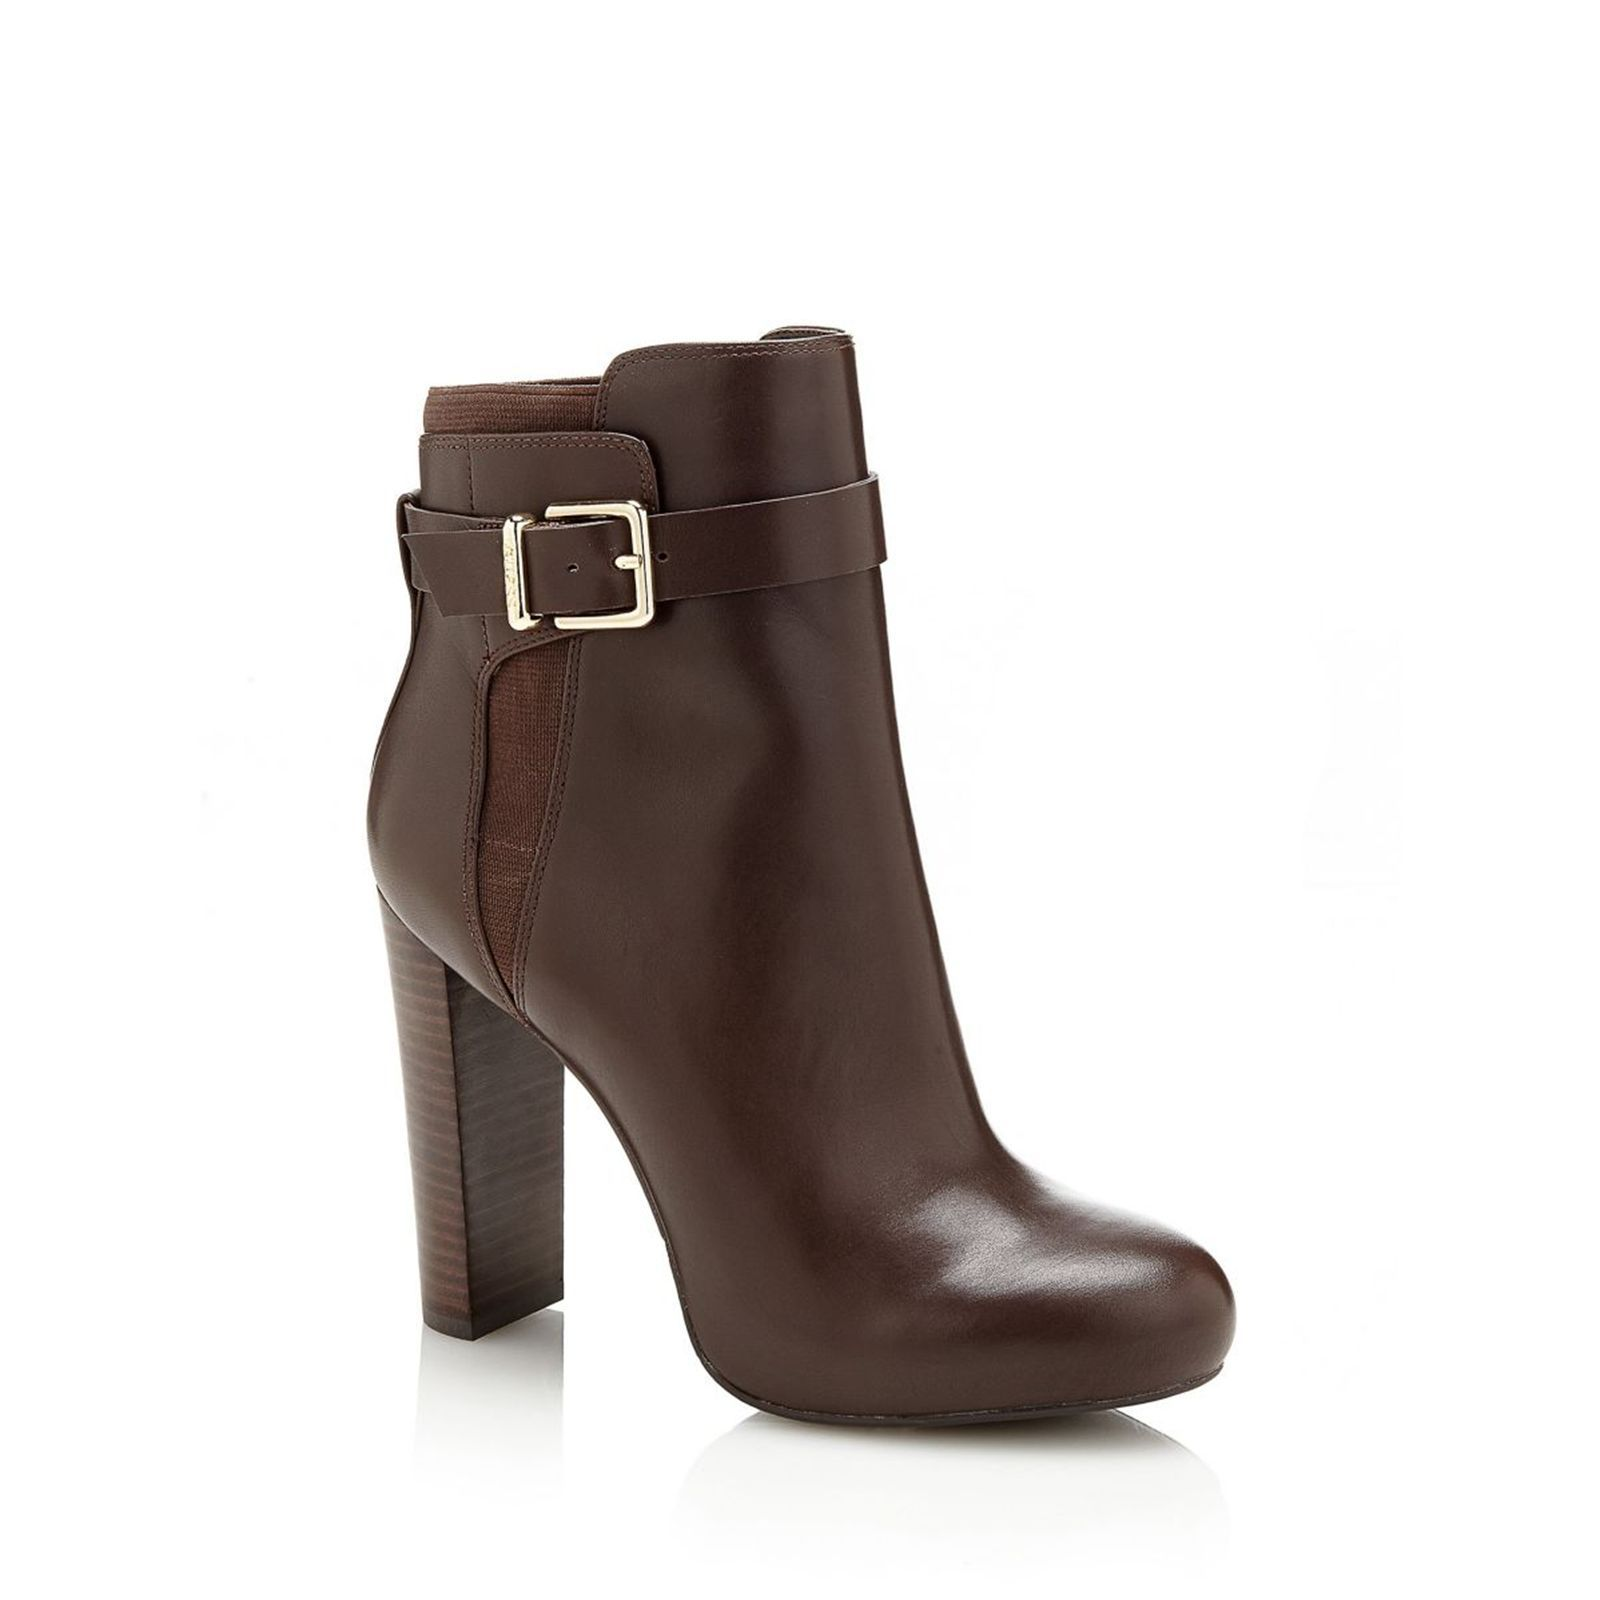 Guess Denisa - Bottines en cuir - marron